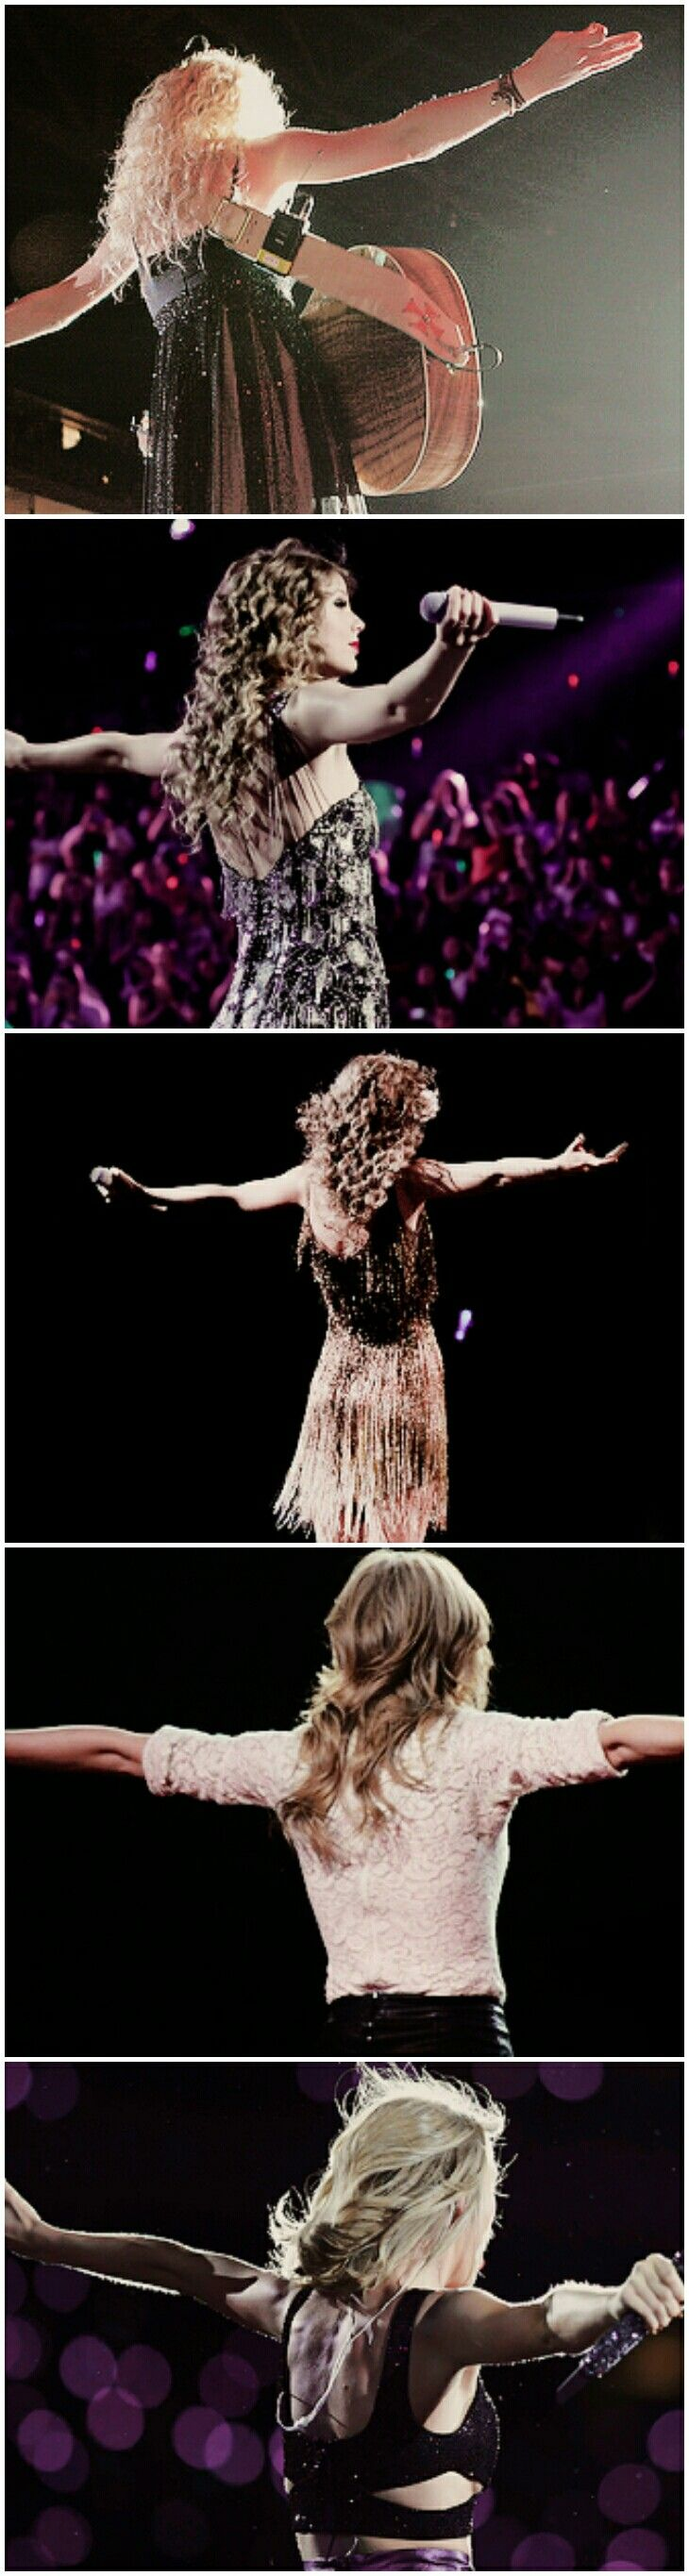 Don't you ever change, Taylor :)